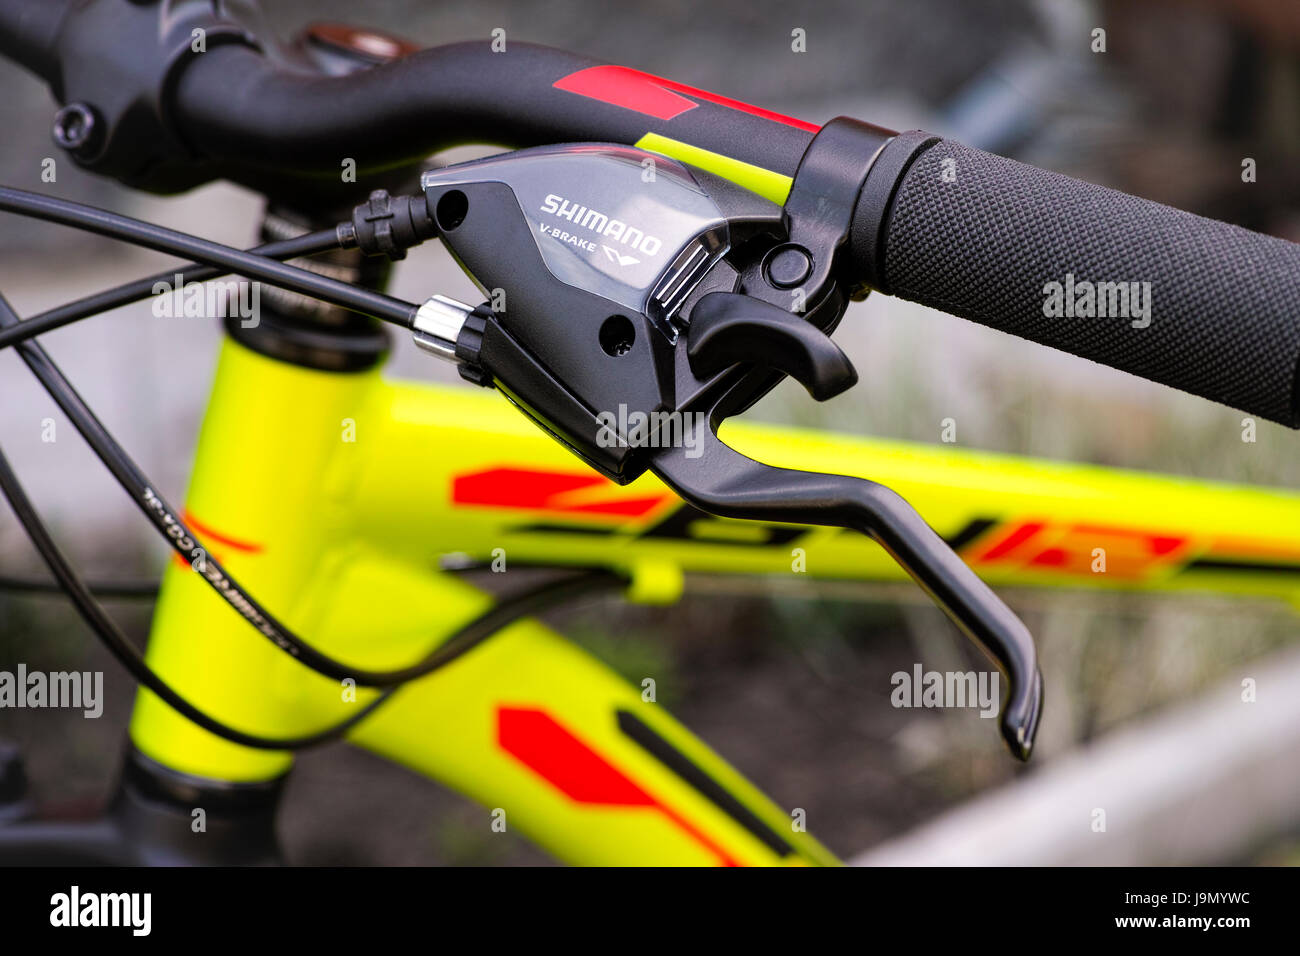 Tambov, Russian Federation - May 07, 2017 Close-up of handlebars with Shimano brake lever. - Stock Image